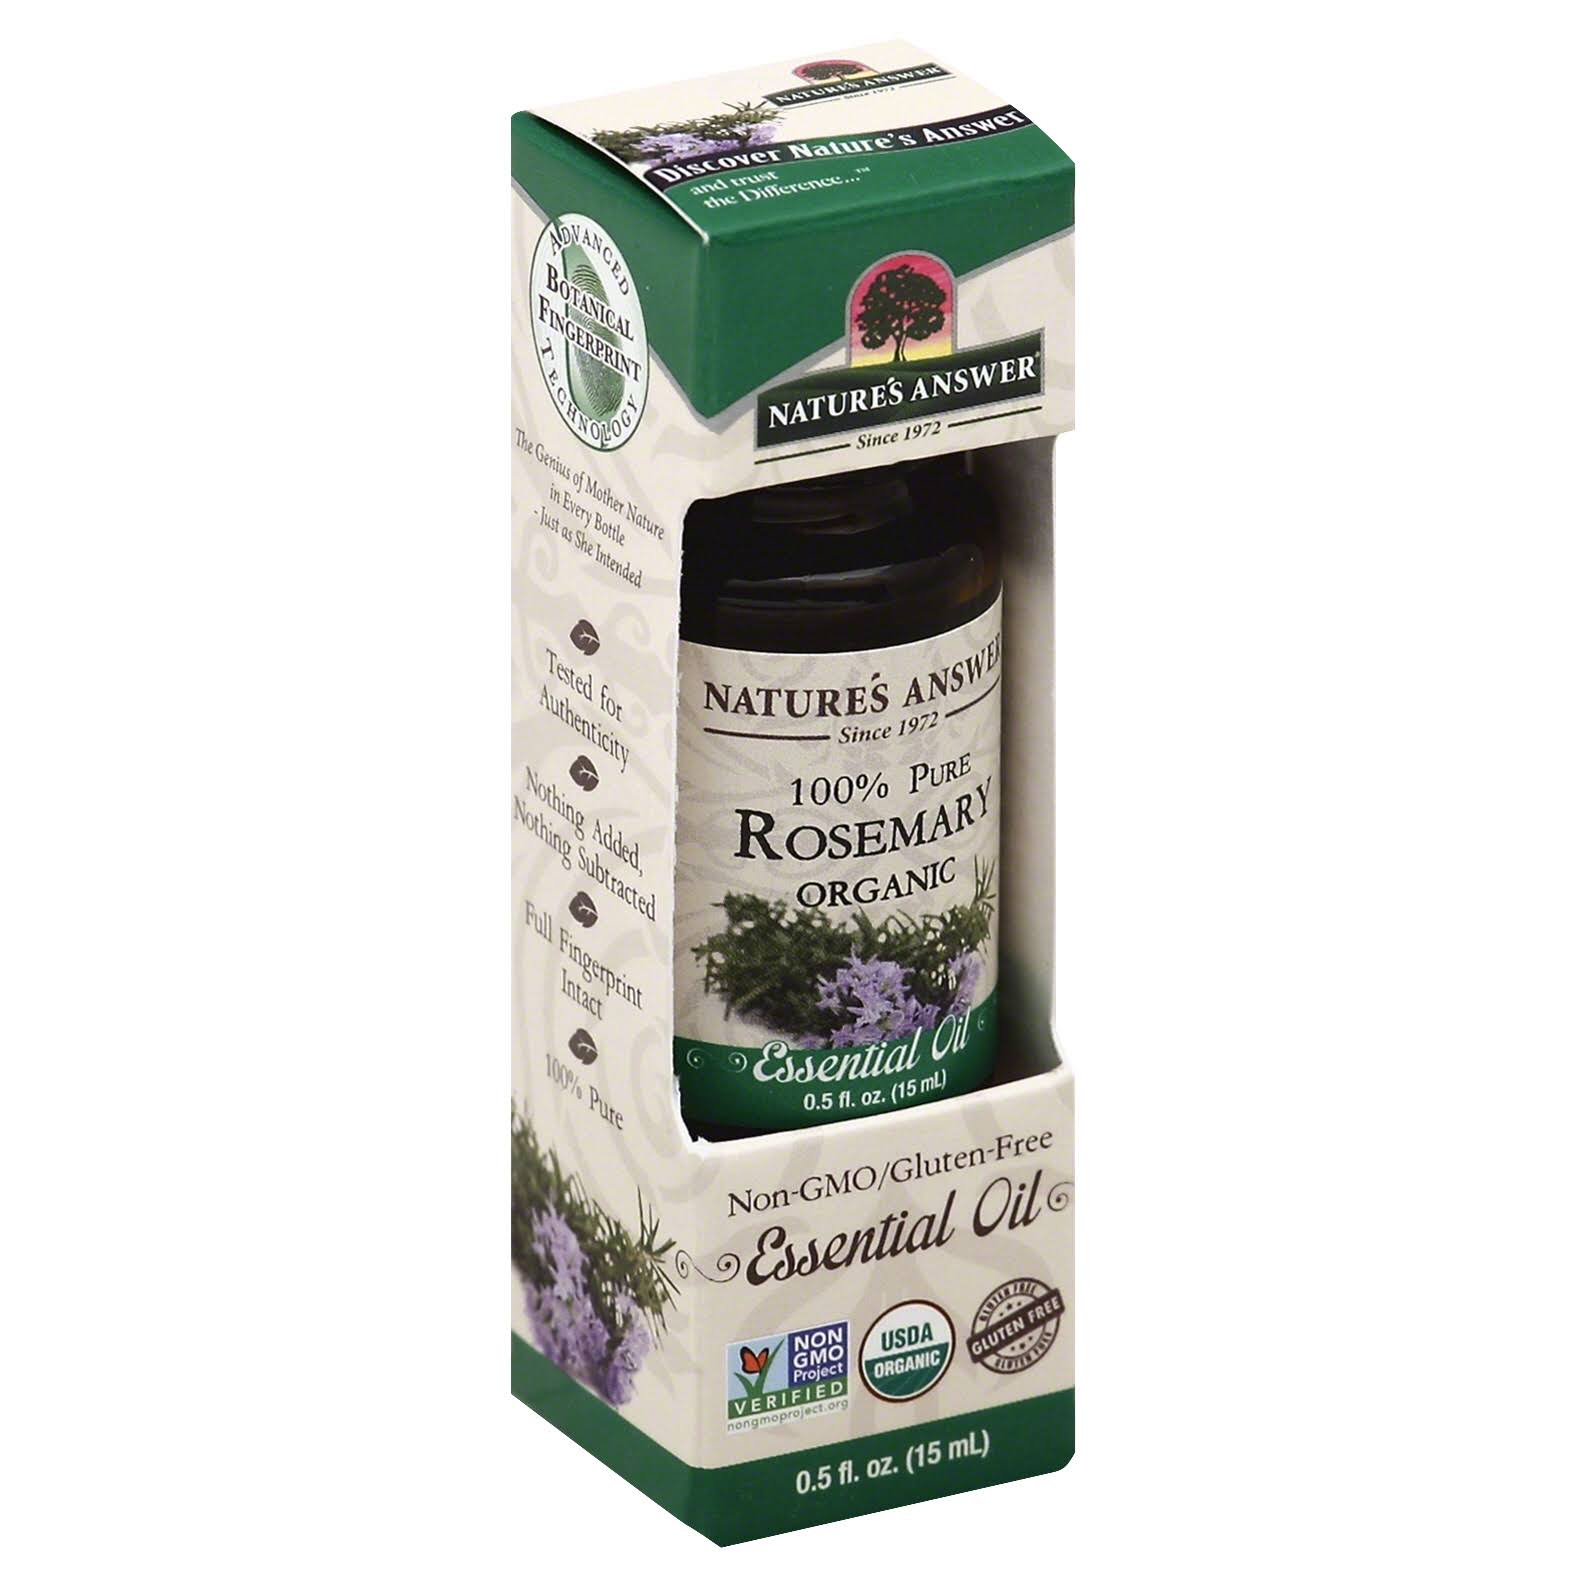 Nature's Answer 100 Percent Pure Rosemary Organic Essential Oil - 0.5oz